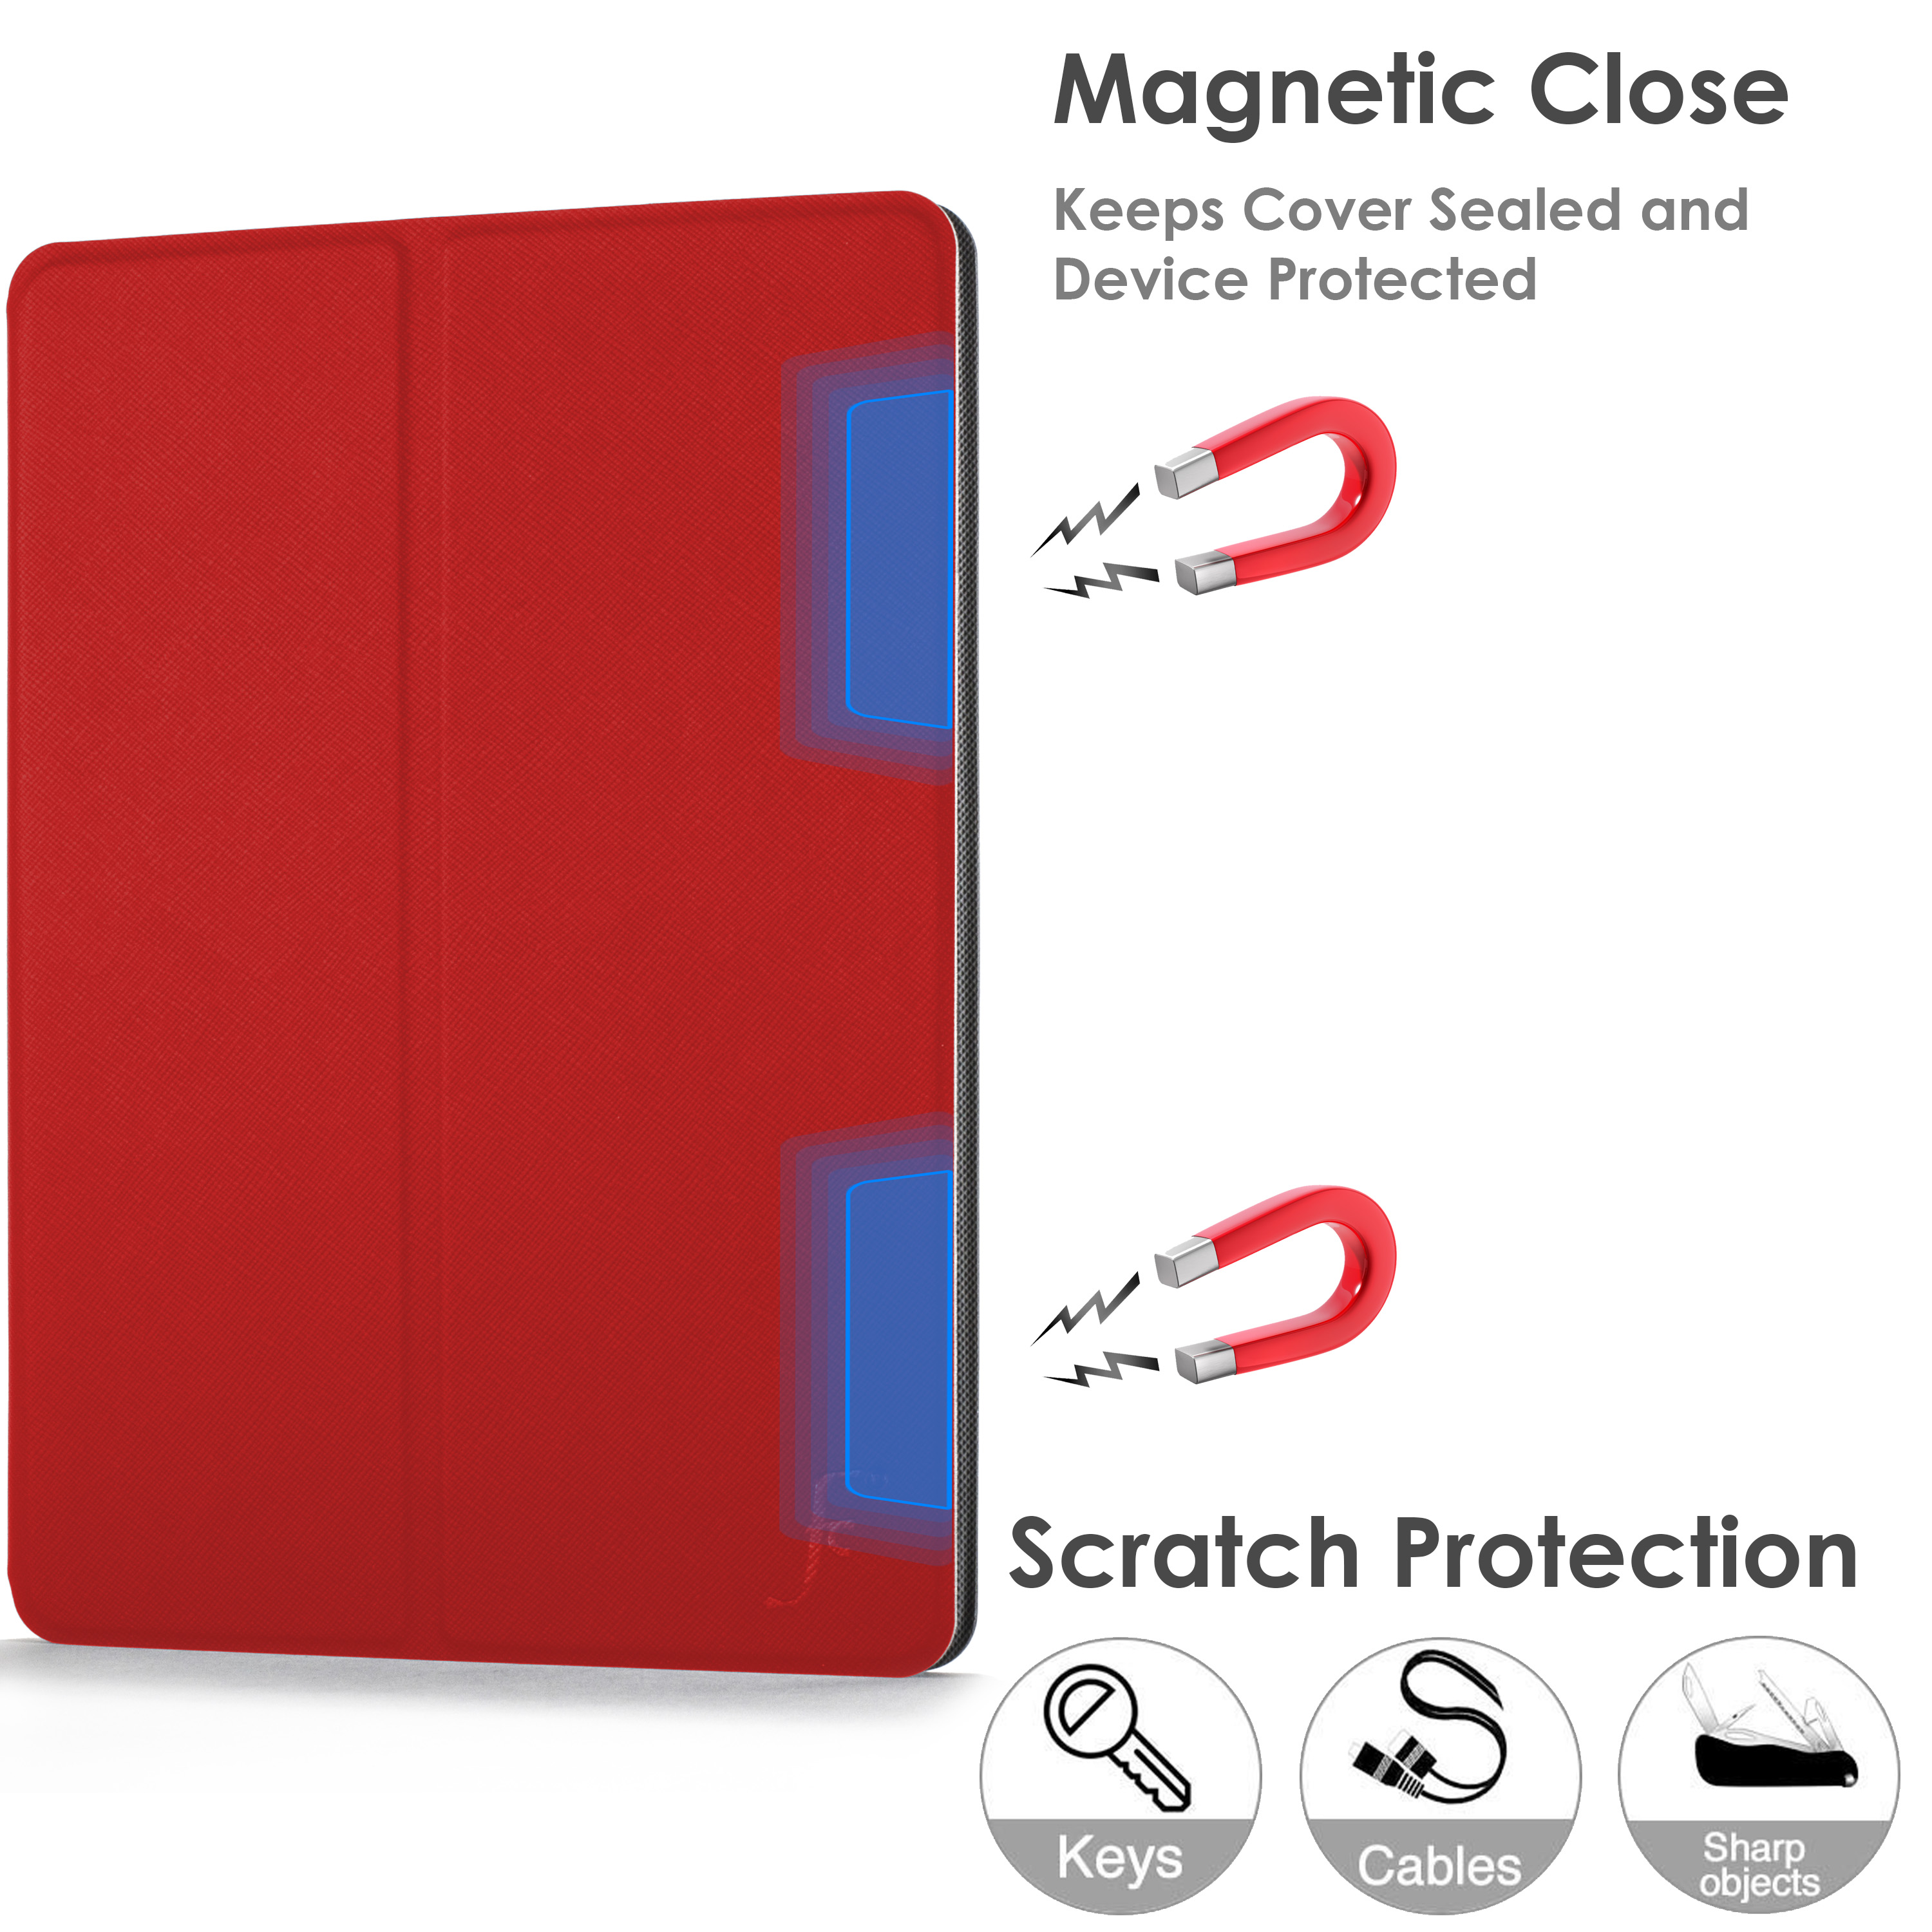 miniature 71 - Samsung Galaxy Tab A 10.1 2019 Étui Magnétique Protection & Support + Stylet